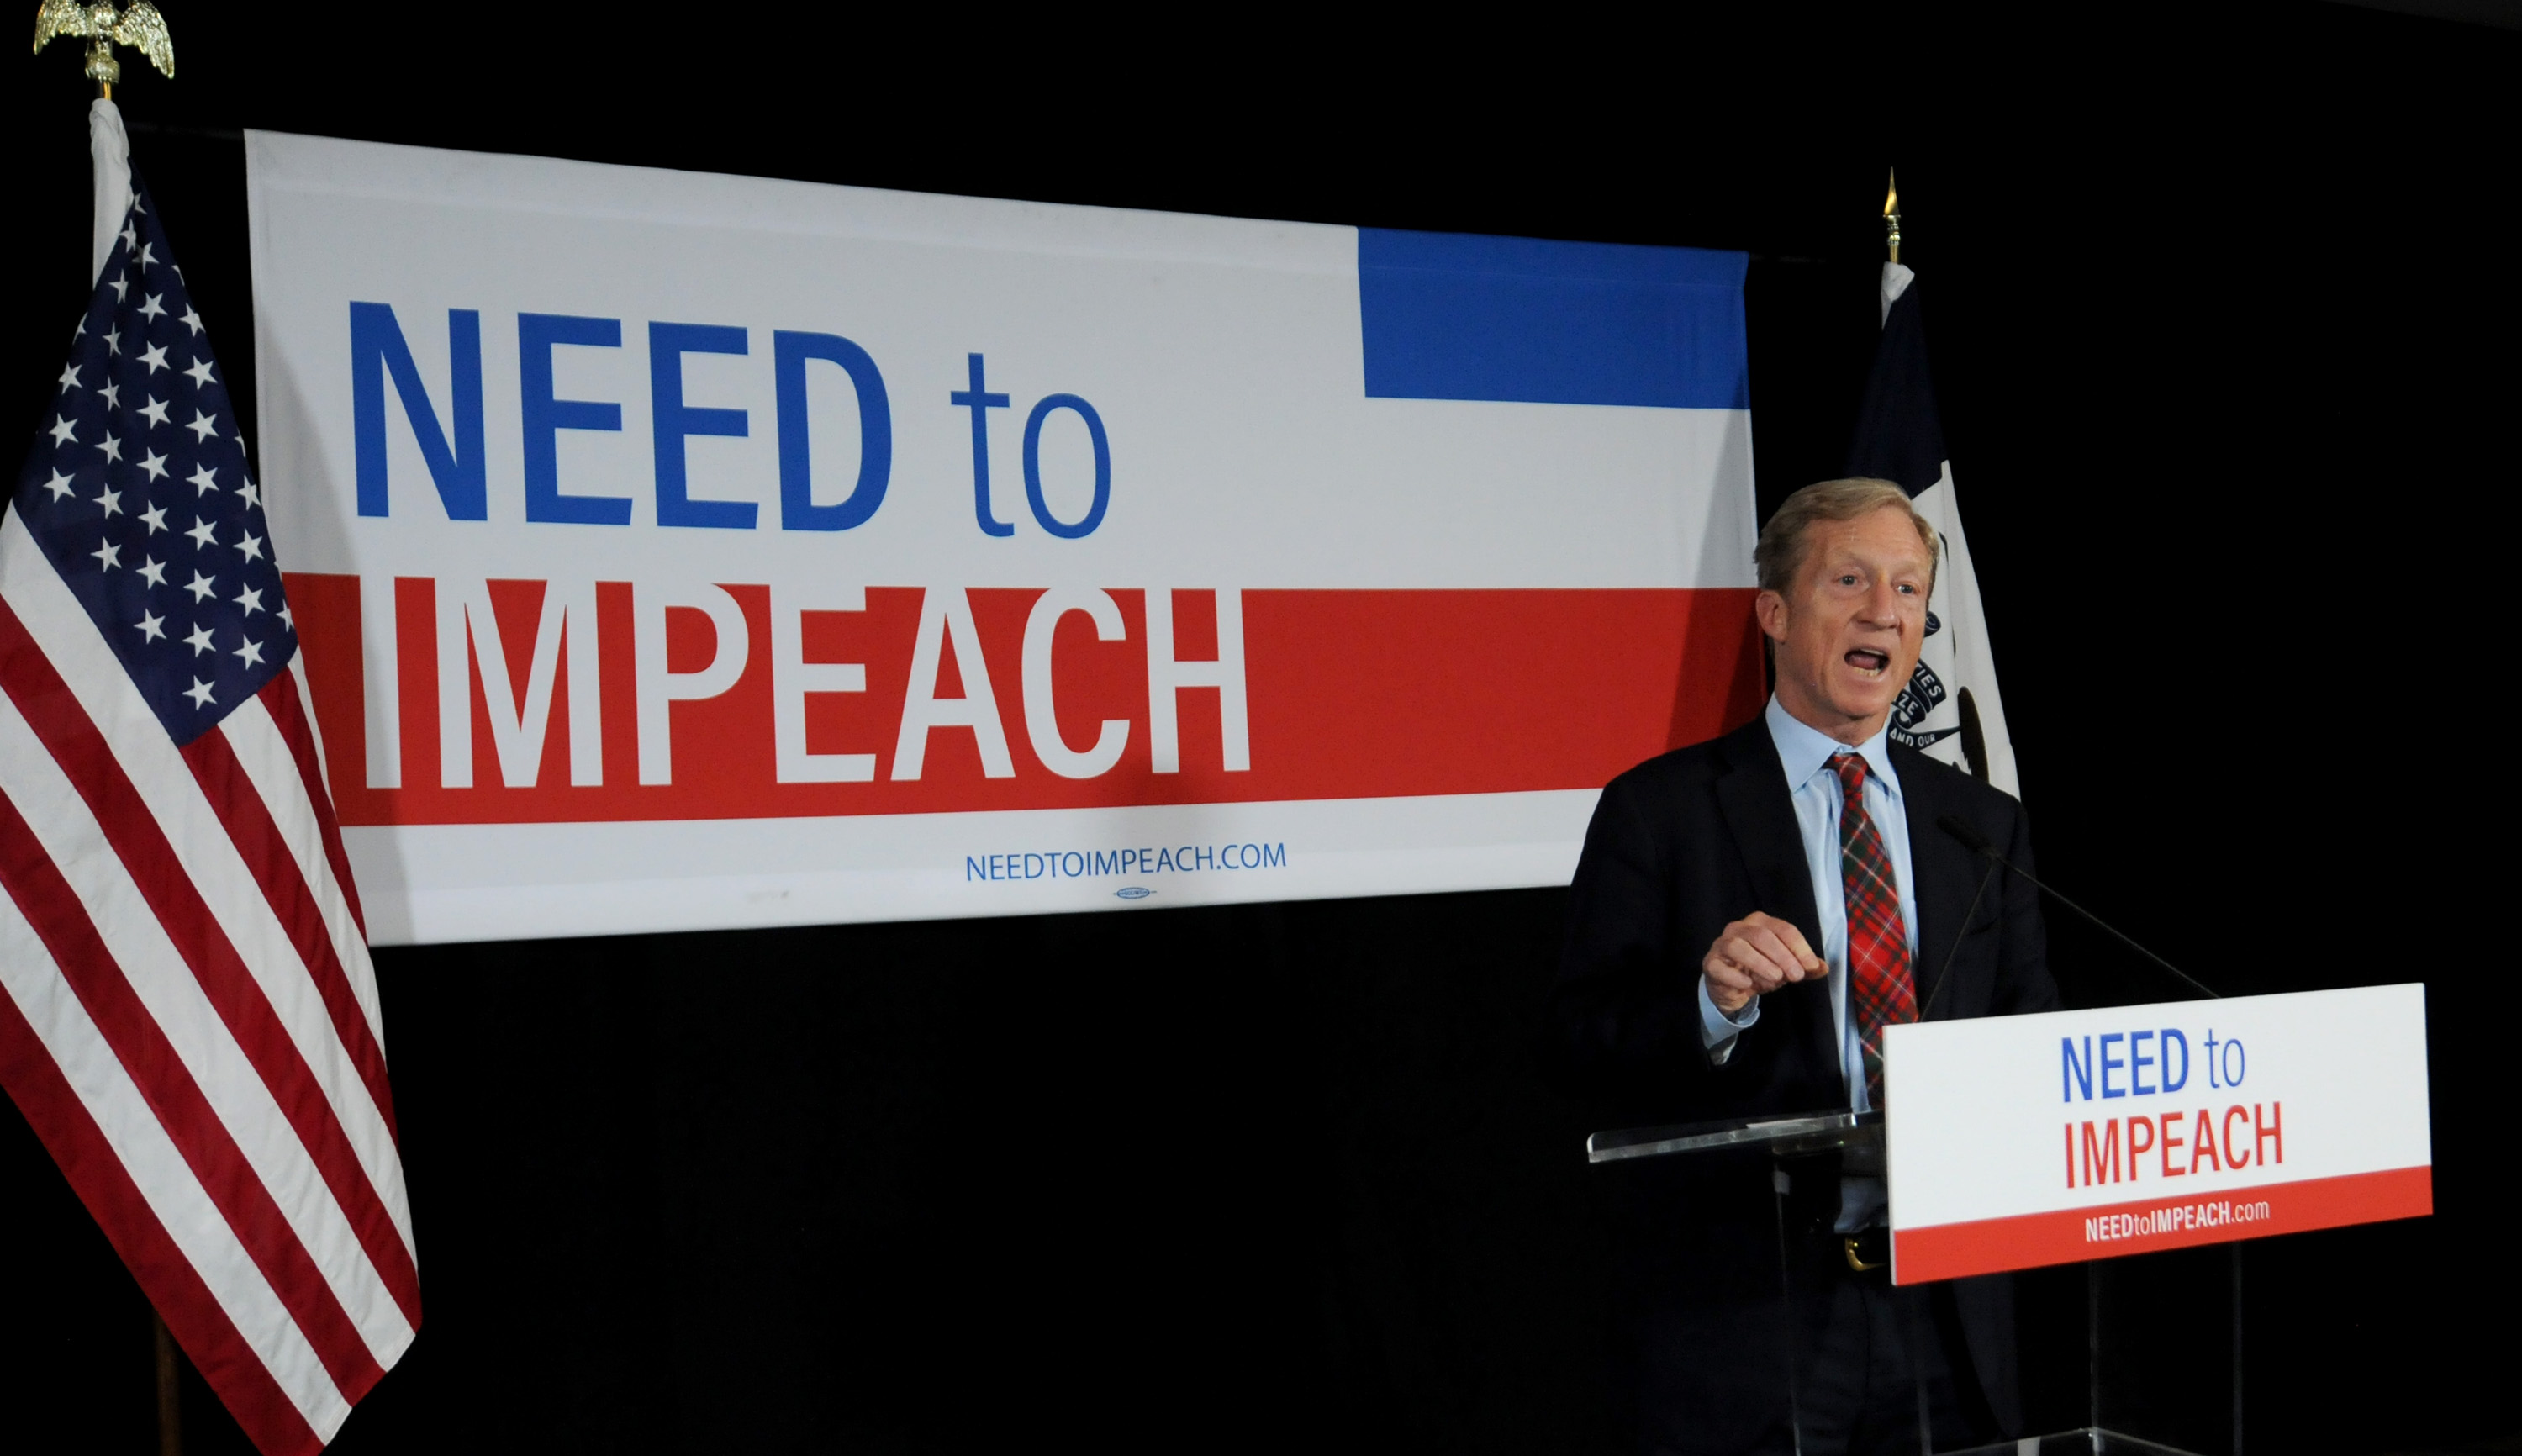 Billionaire Activist Tom Steyer speaks to supporters on January 9, 2019 in Des Moines, Iowa. Steyer announced that he would not run for president in 2020, and would instead concentrate his efforts on the possibility of impeaching President Trump. (Photo by Steve Pope/Getty Images)